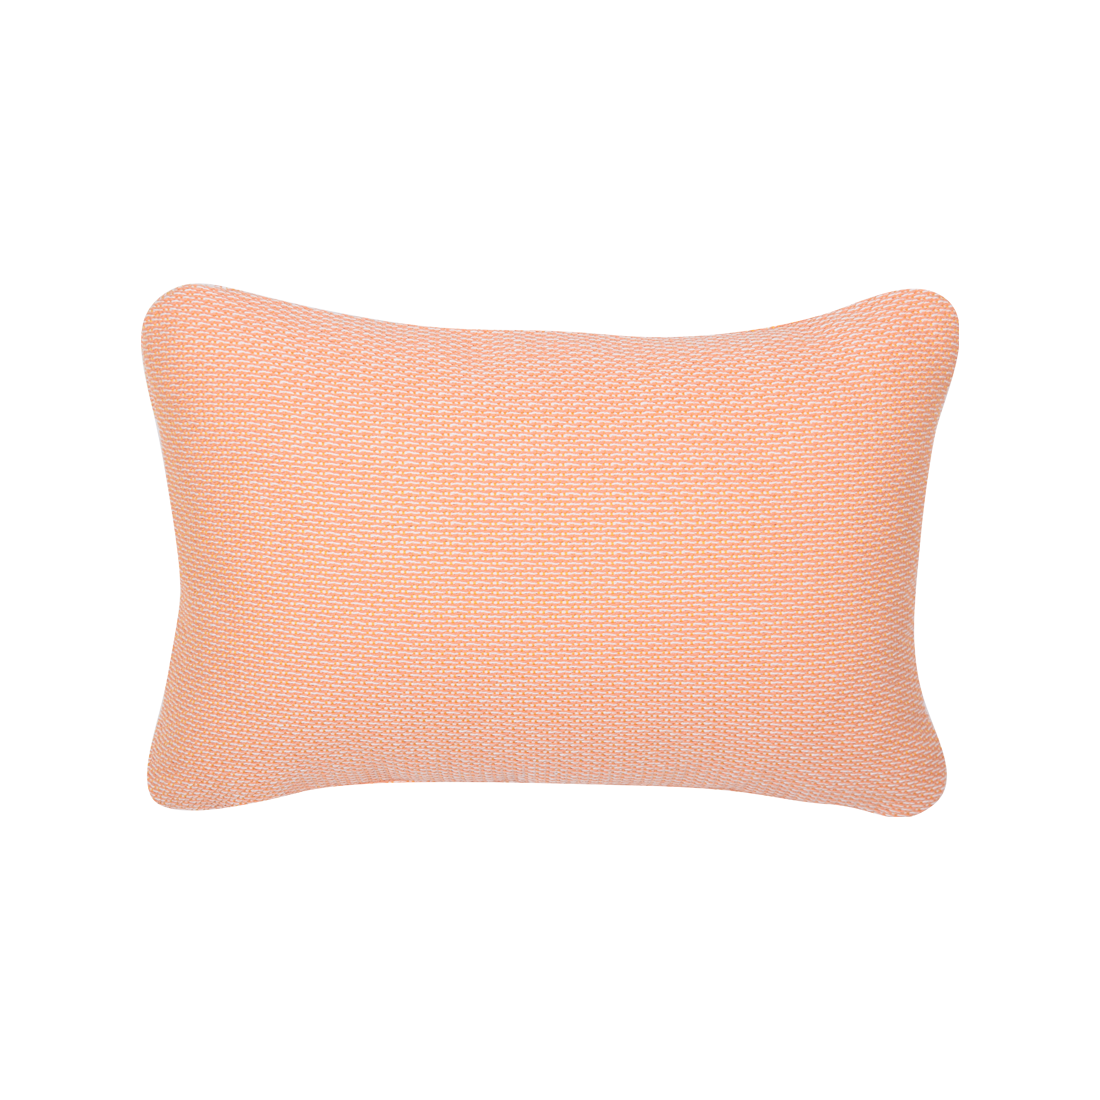 EVASION / 2692 OUTDOOR CUSHION 44X30CM